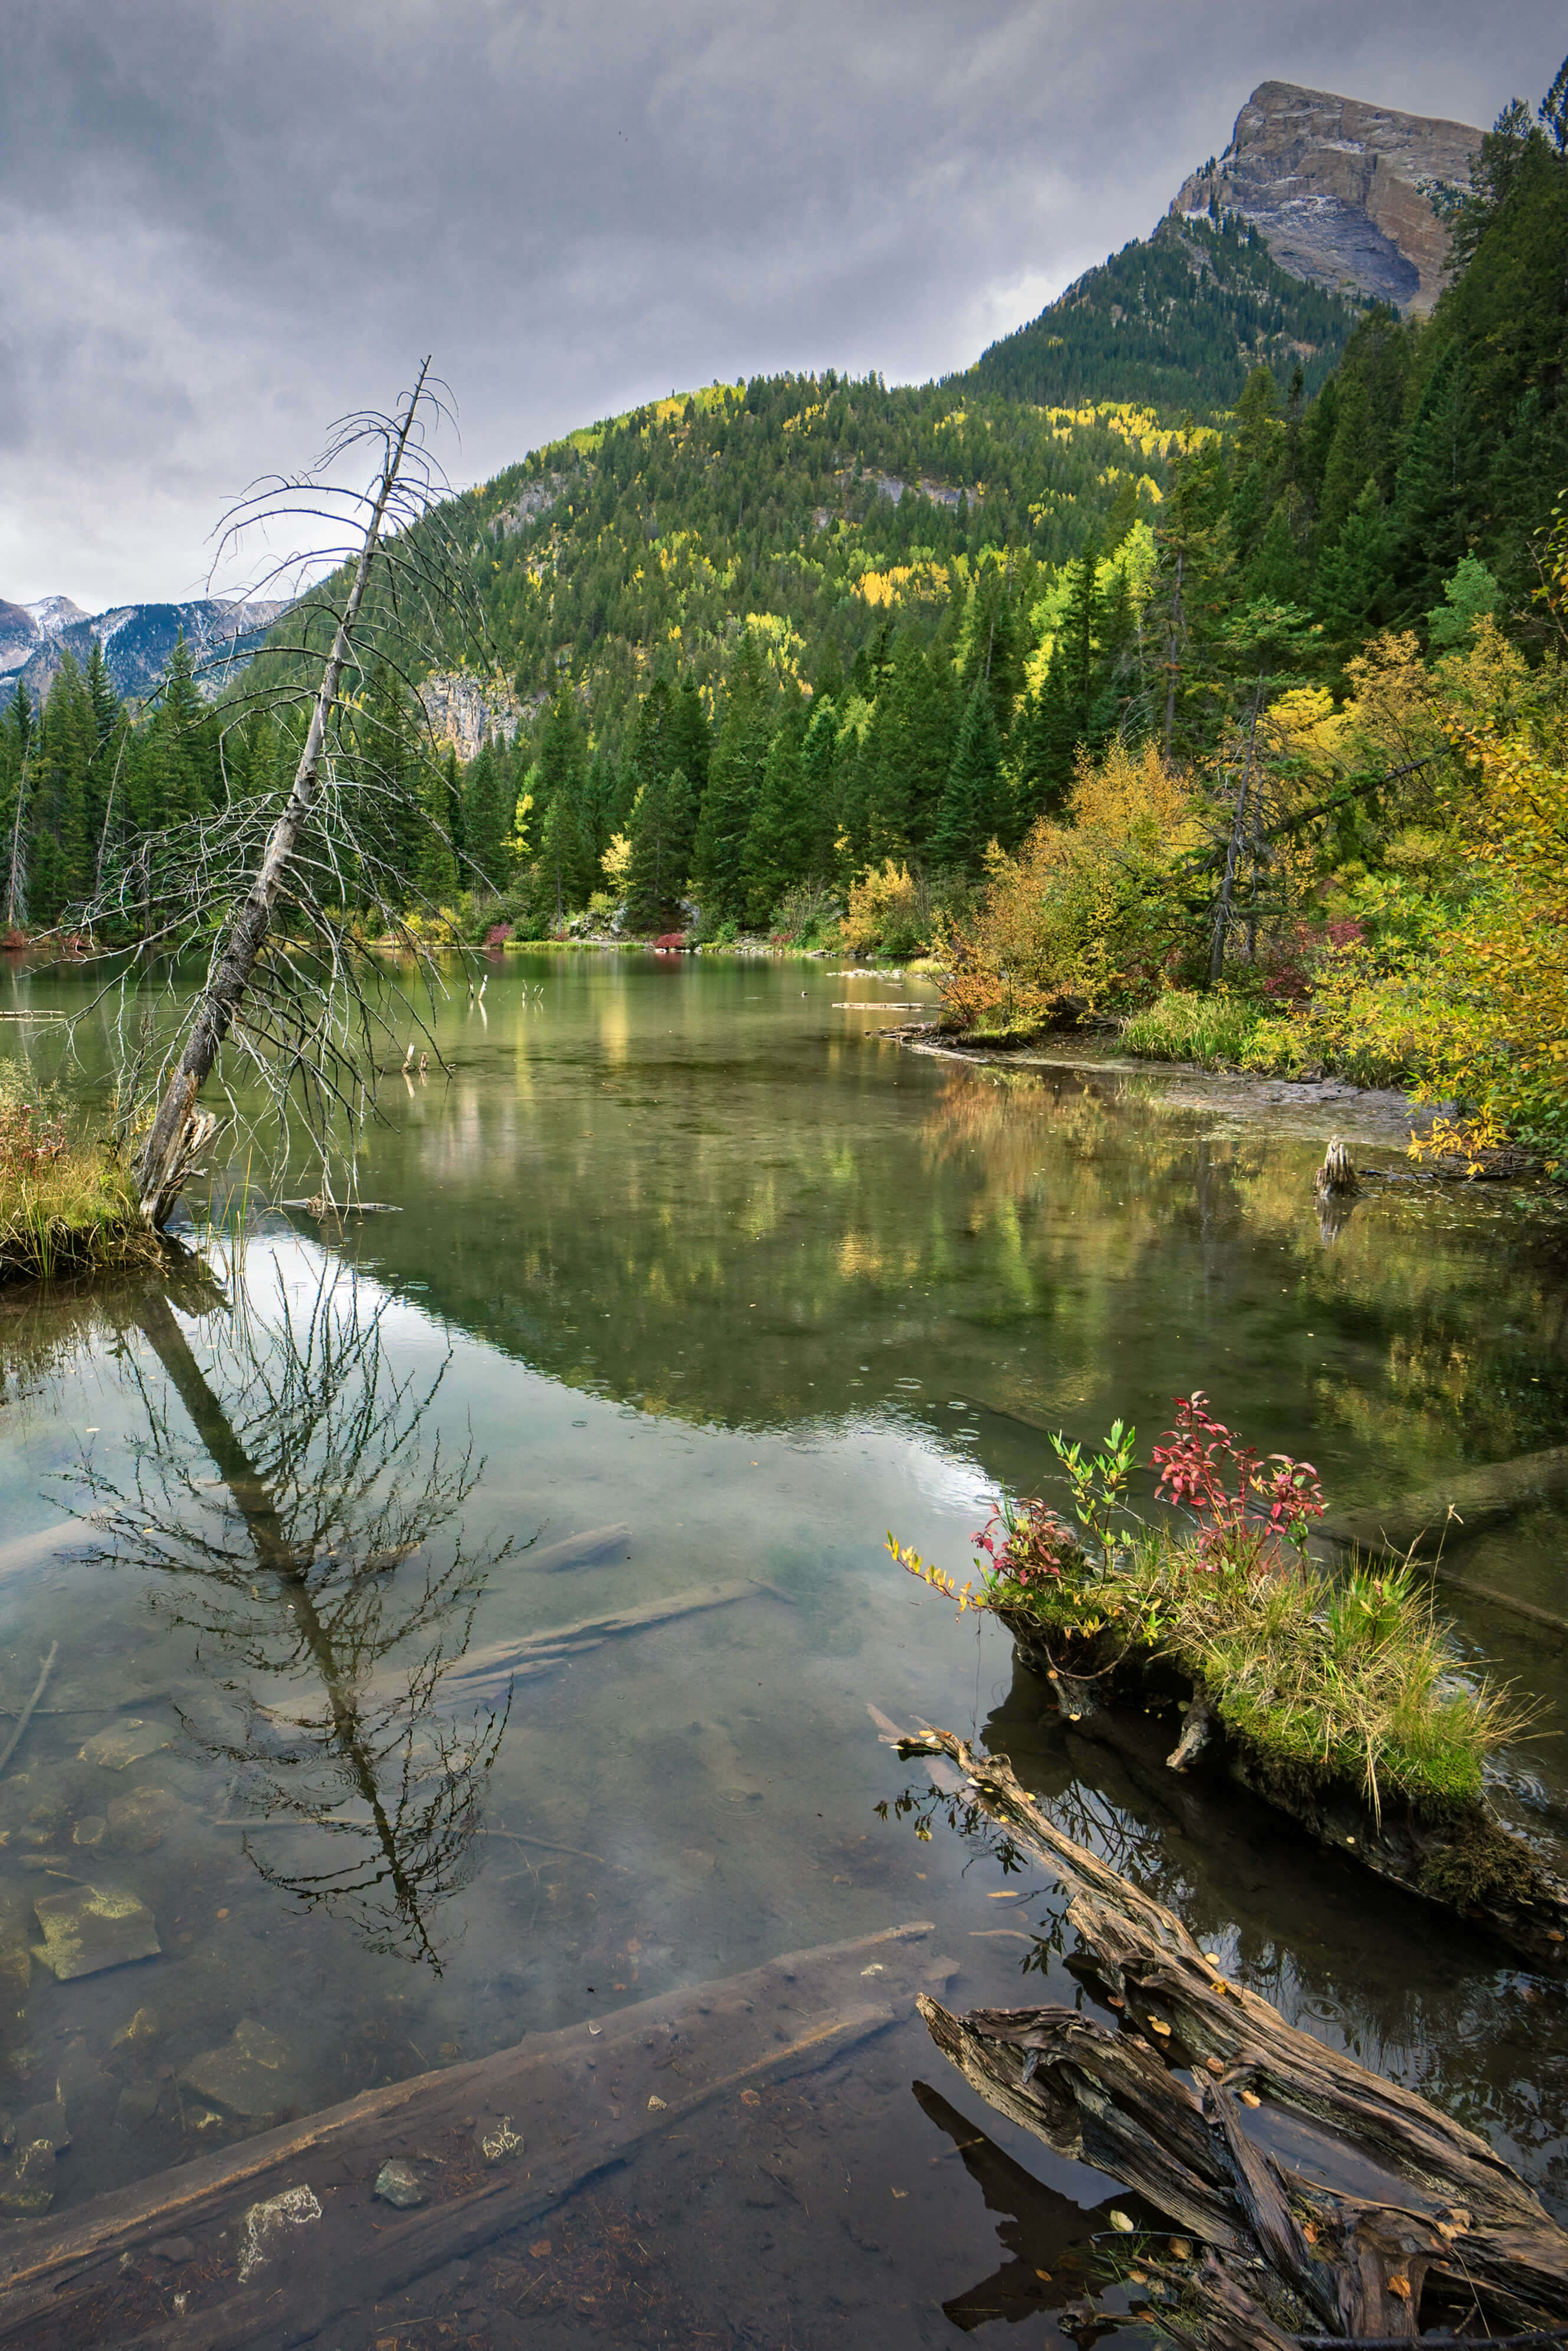 An overlooked photography stop on the road to visit Crystal Mill in Marble Colorado; Lizard Lake is worth a stop to explore on its own.